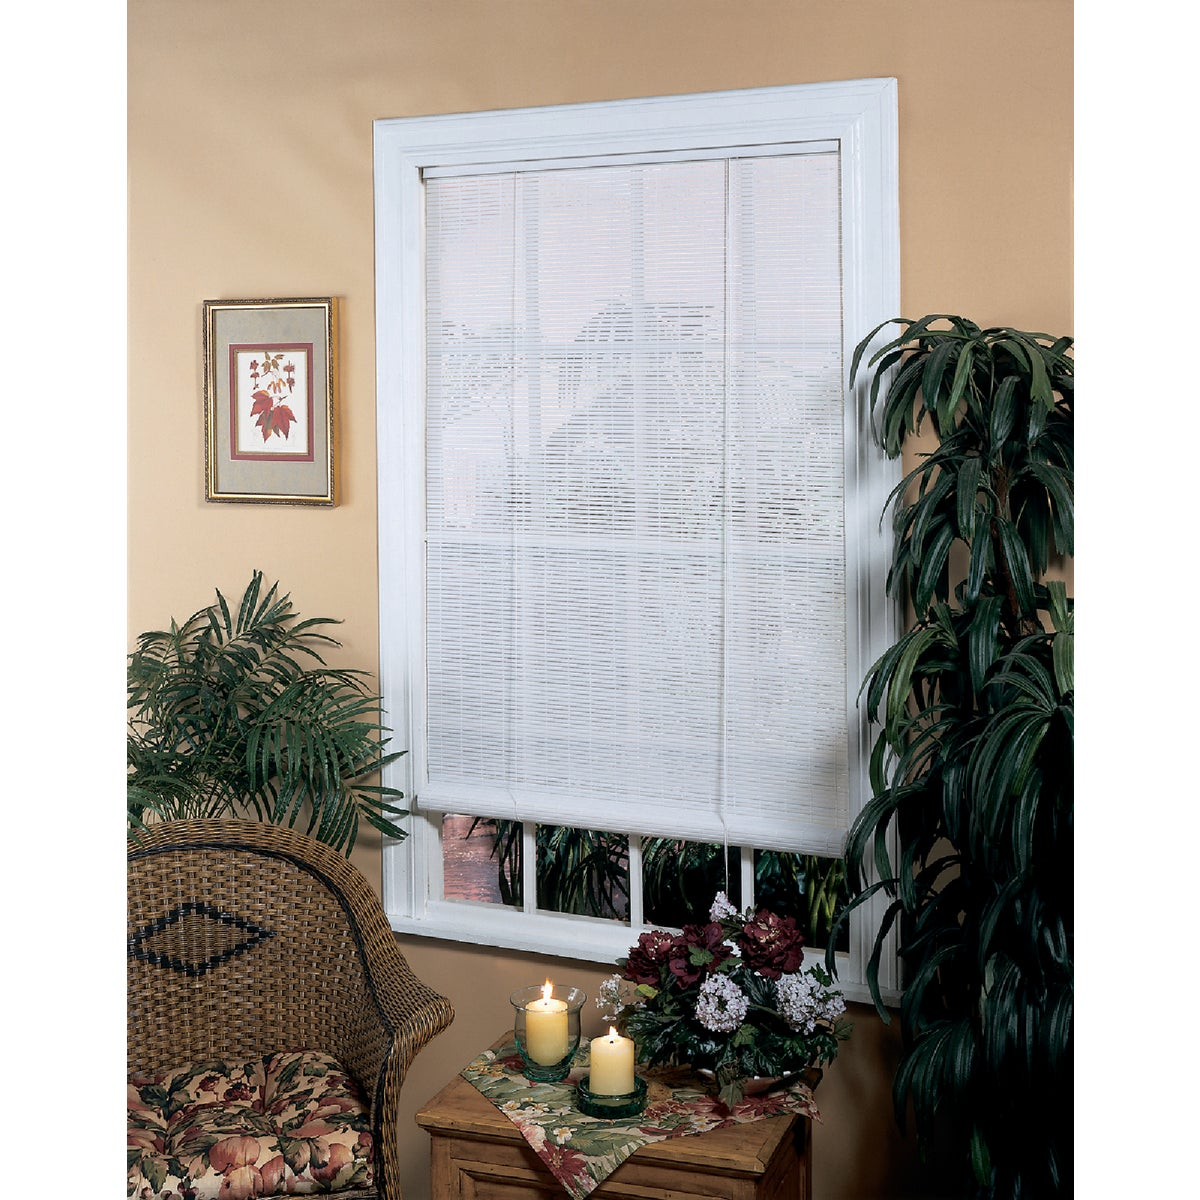 48X72 WHT ROLL-UP BLIND